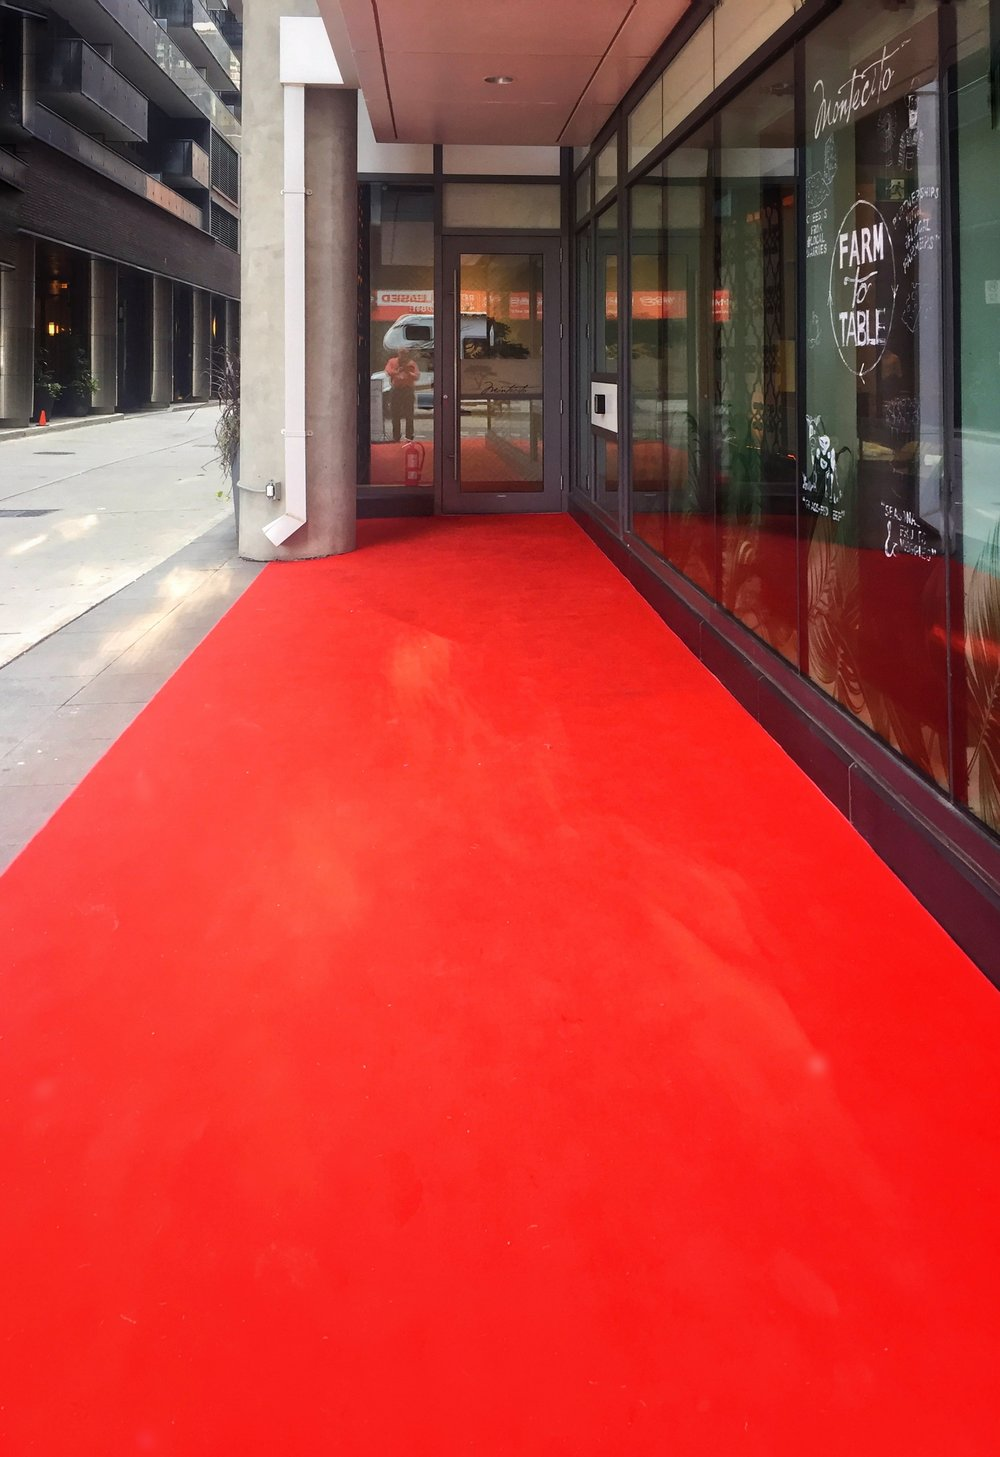 Since the starting of TIFF, I've developed an attraction to red carpets.